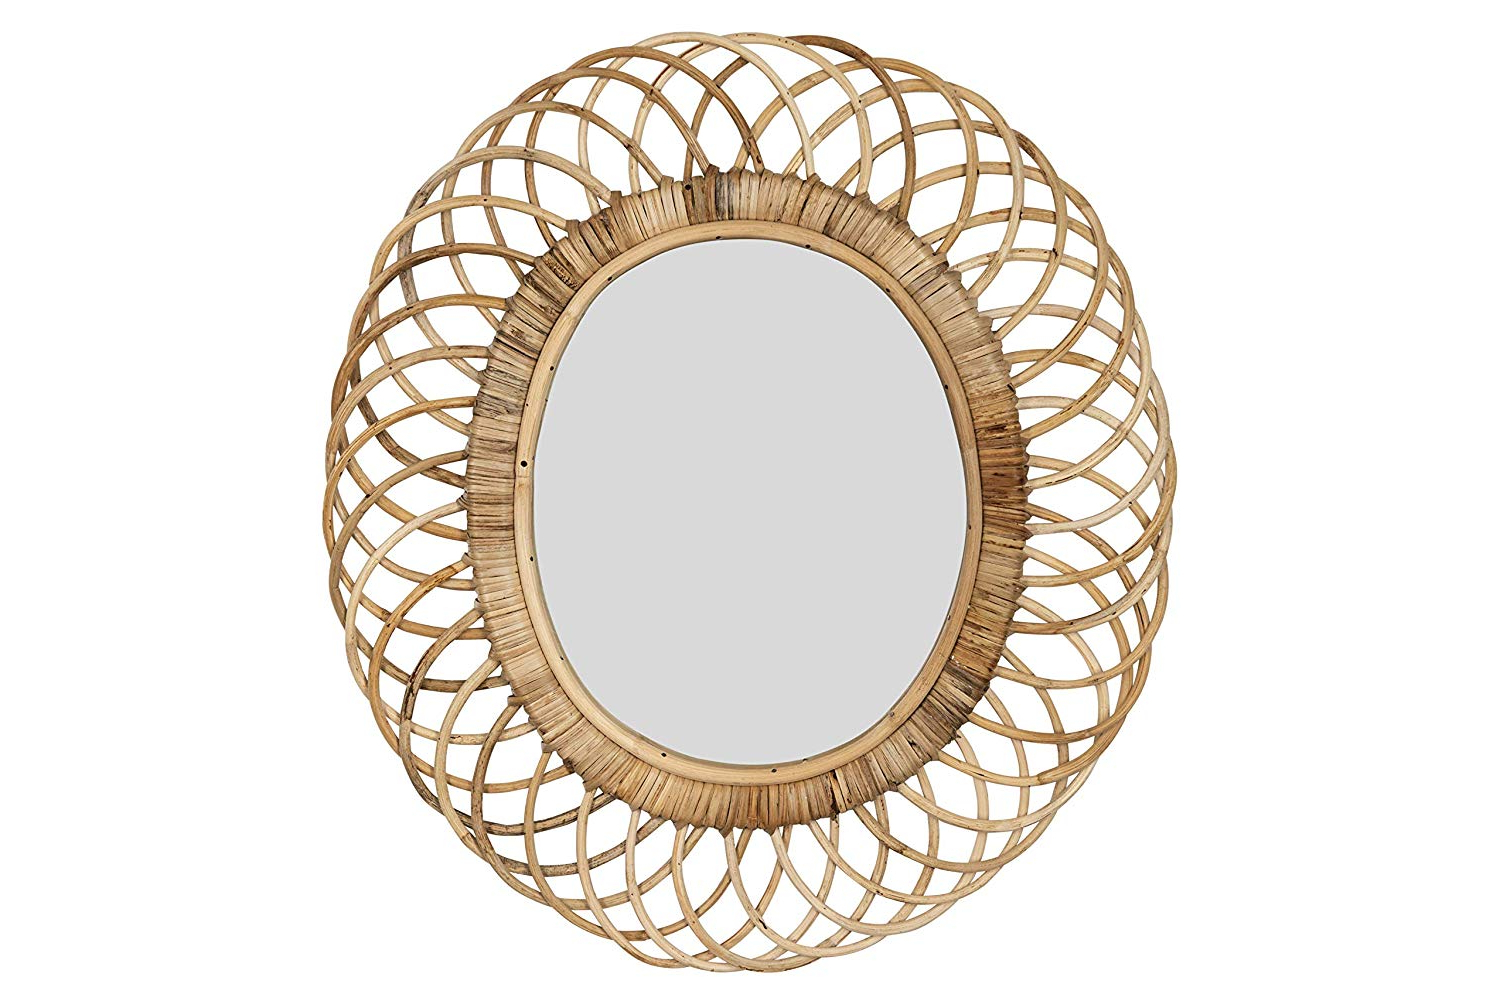 Creative Co Op Oval Woven Bamboo Wall Mirror, Brown In Most Current Bamboo Wall Mirrors (View 17 of 20)